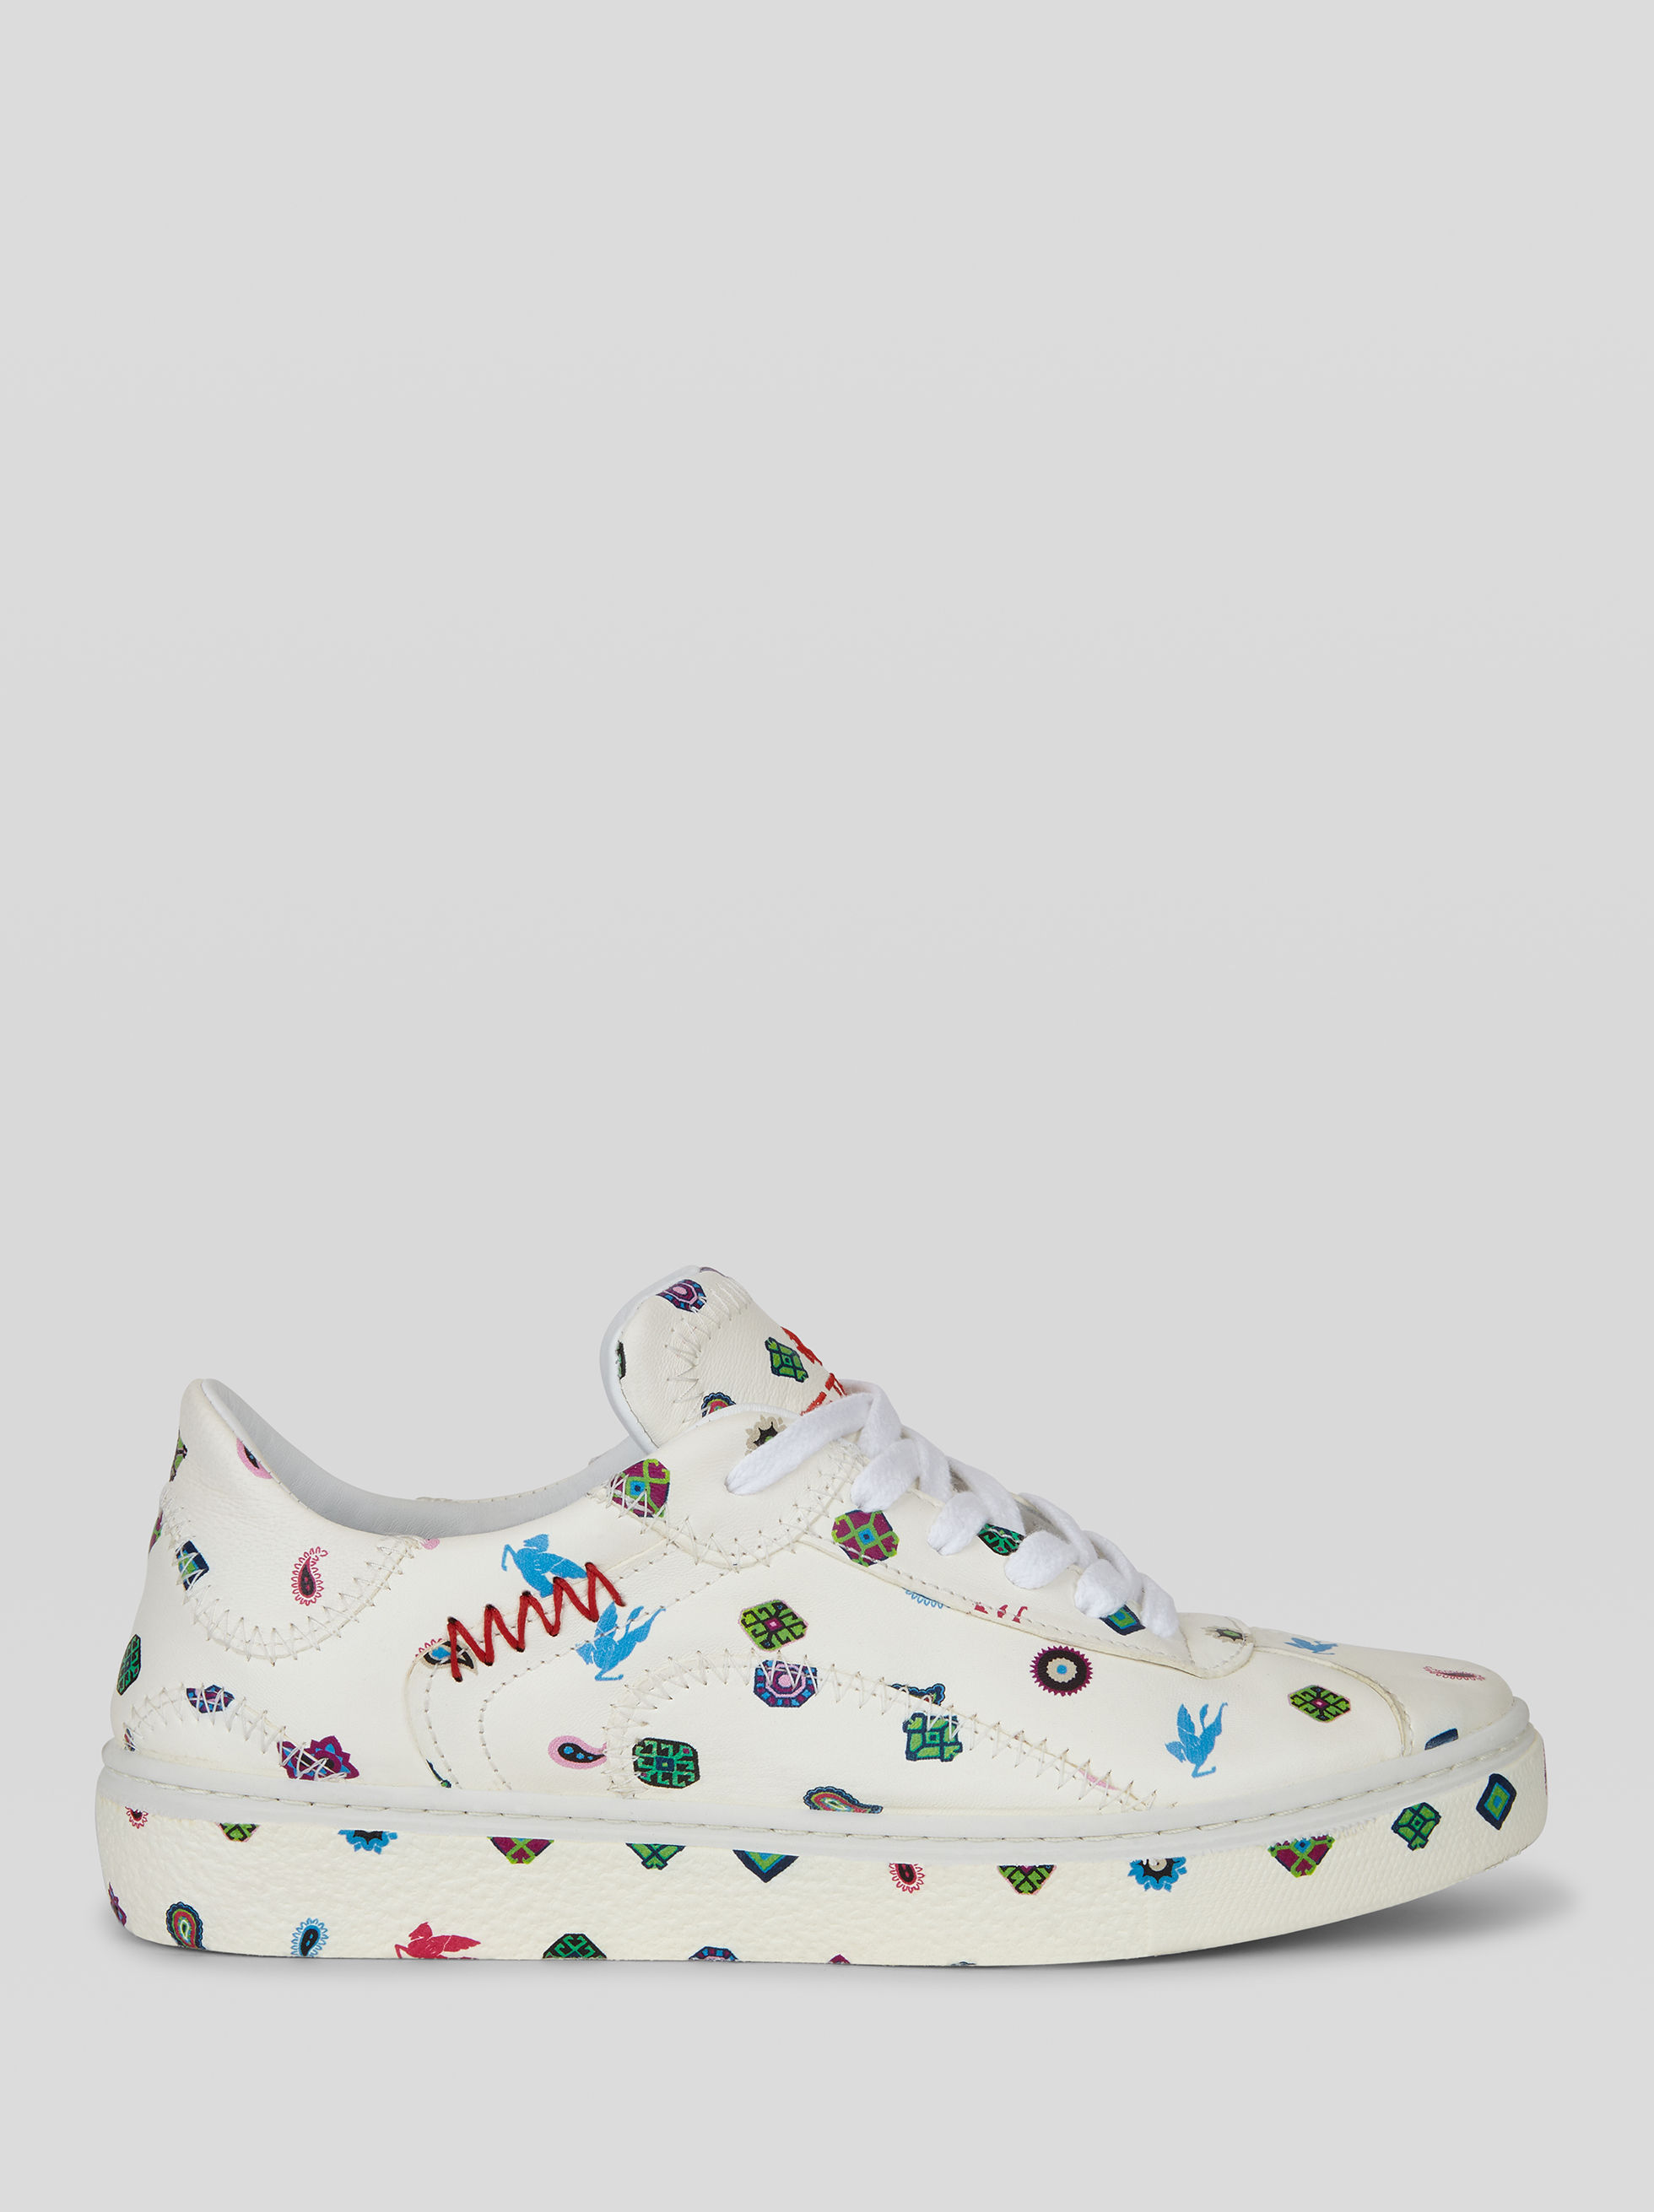 MULTI-COLOURED PRINT LEATHER SNEAKERS